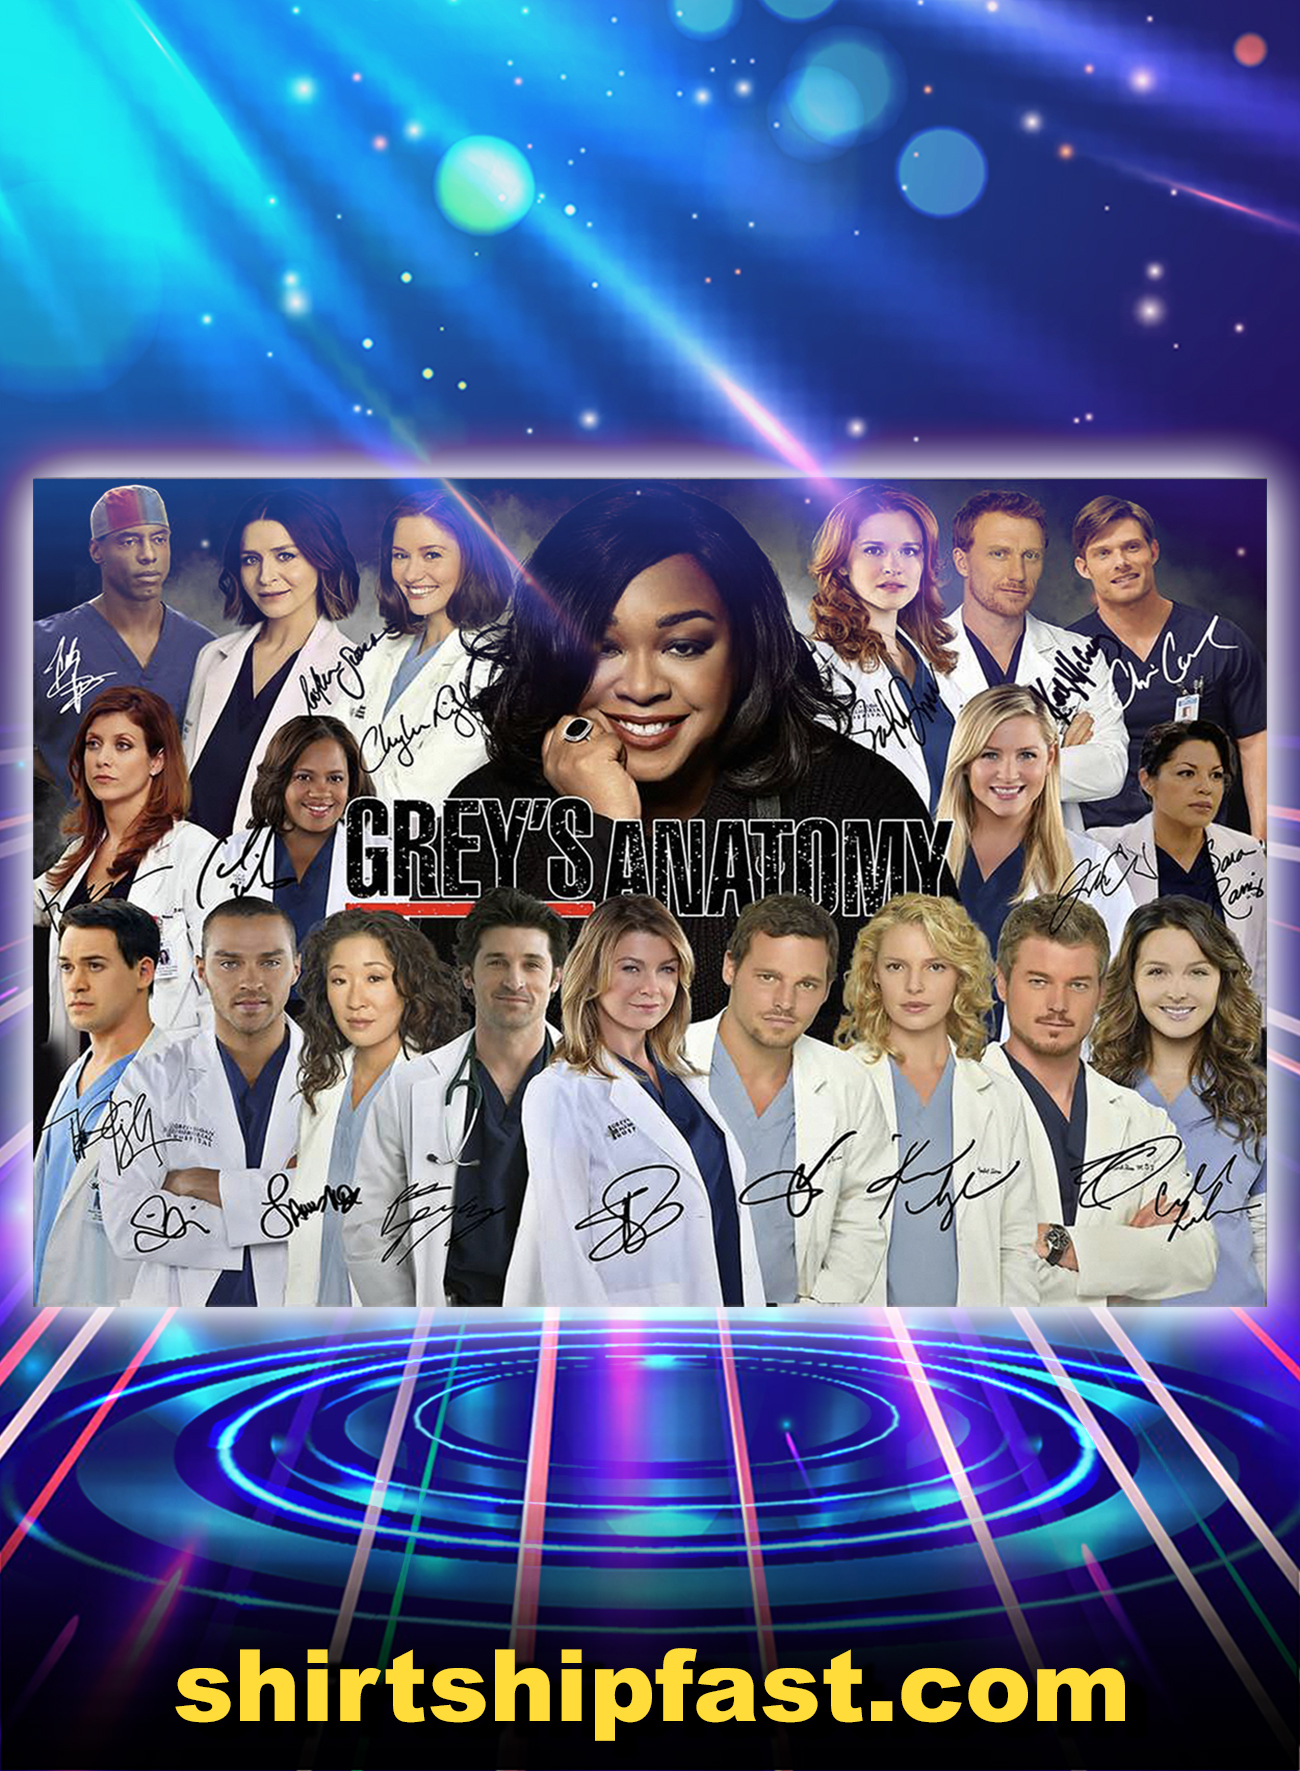 Grey's anatomy actor signature poster - A1